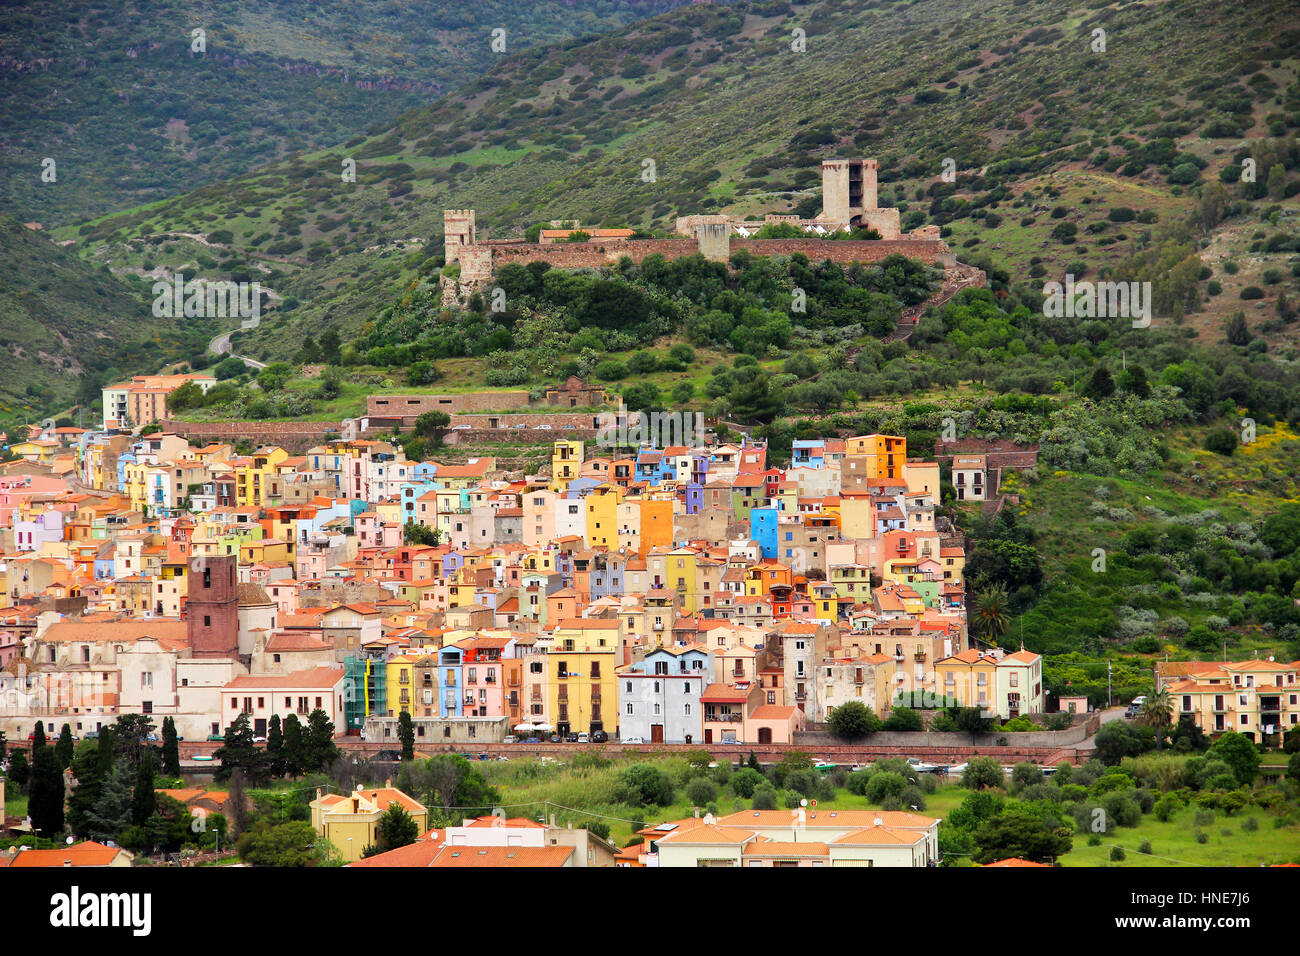 Bosa town with colorful houses and Serravalle's Castle, Oristano province, Sardinia, Italy - Stock Image